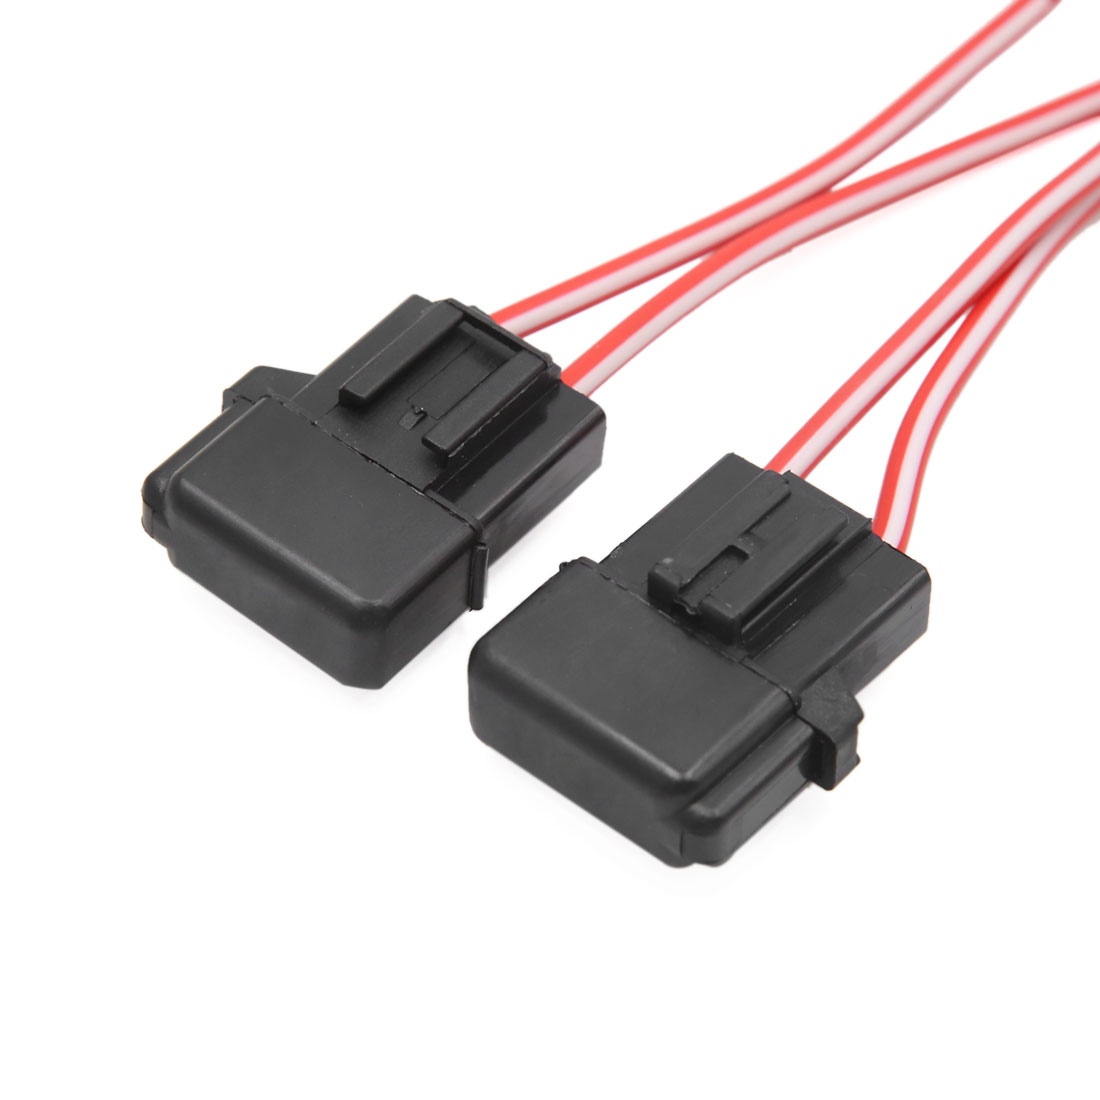 small resolution of 2pcs black plastic square shell cap wiring harness fuse holder for car vehicle walmart canada